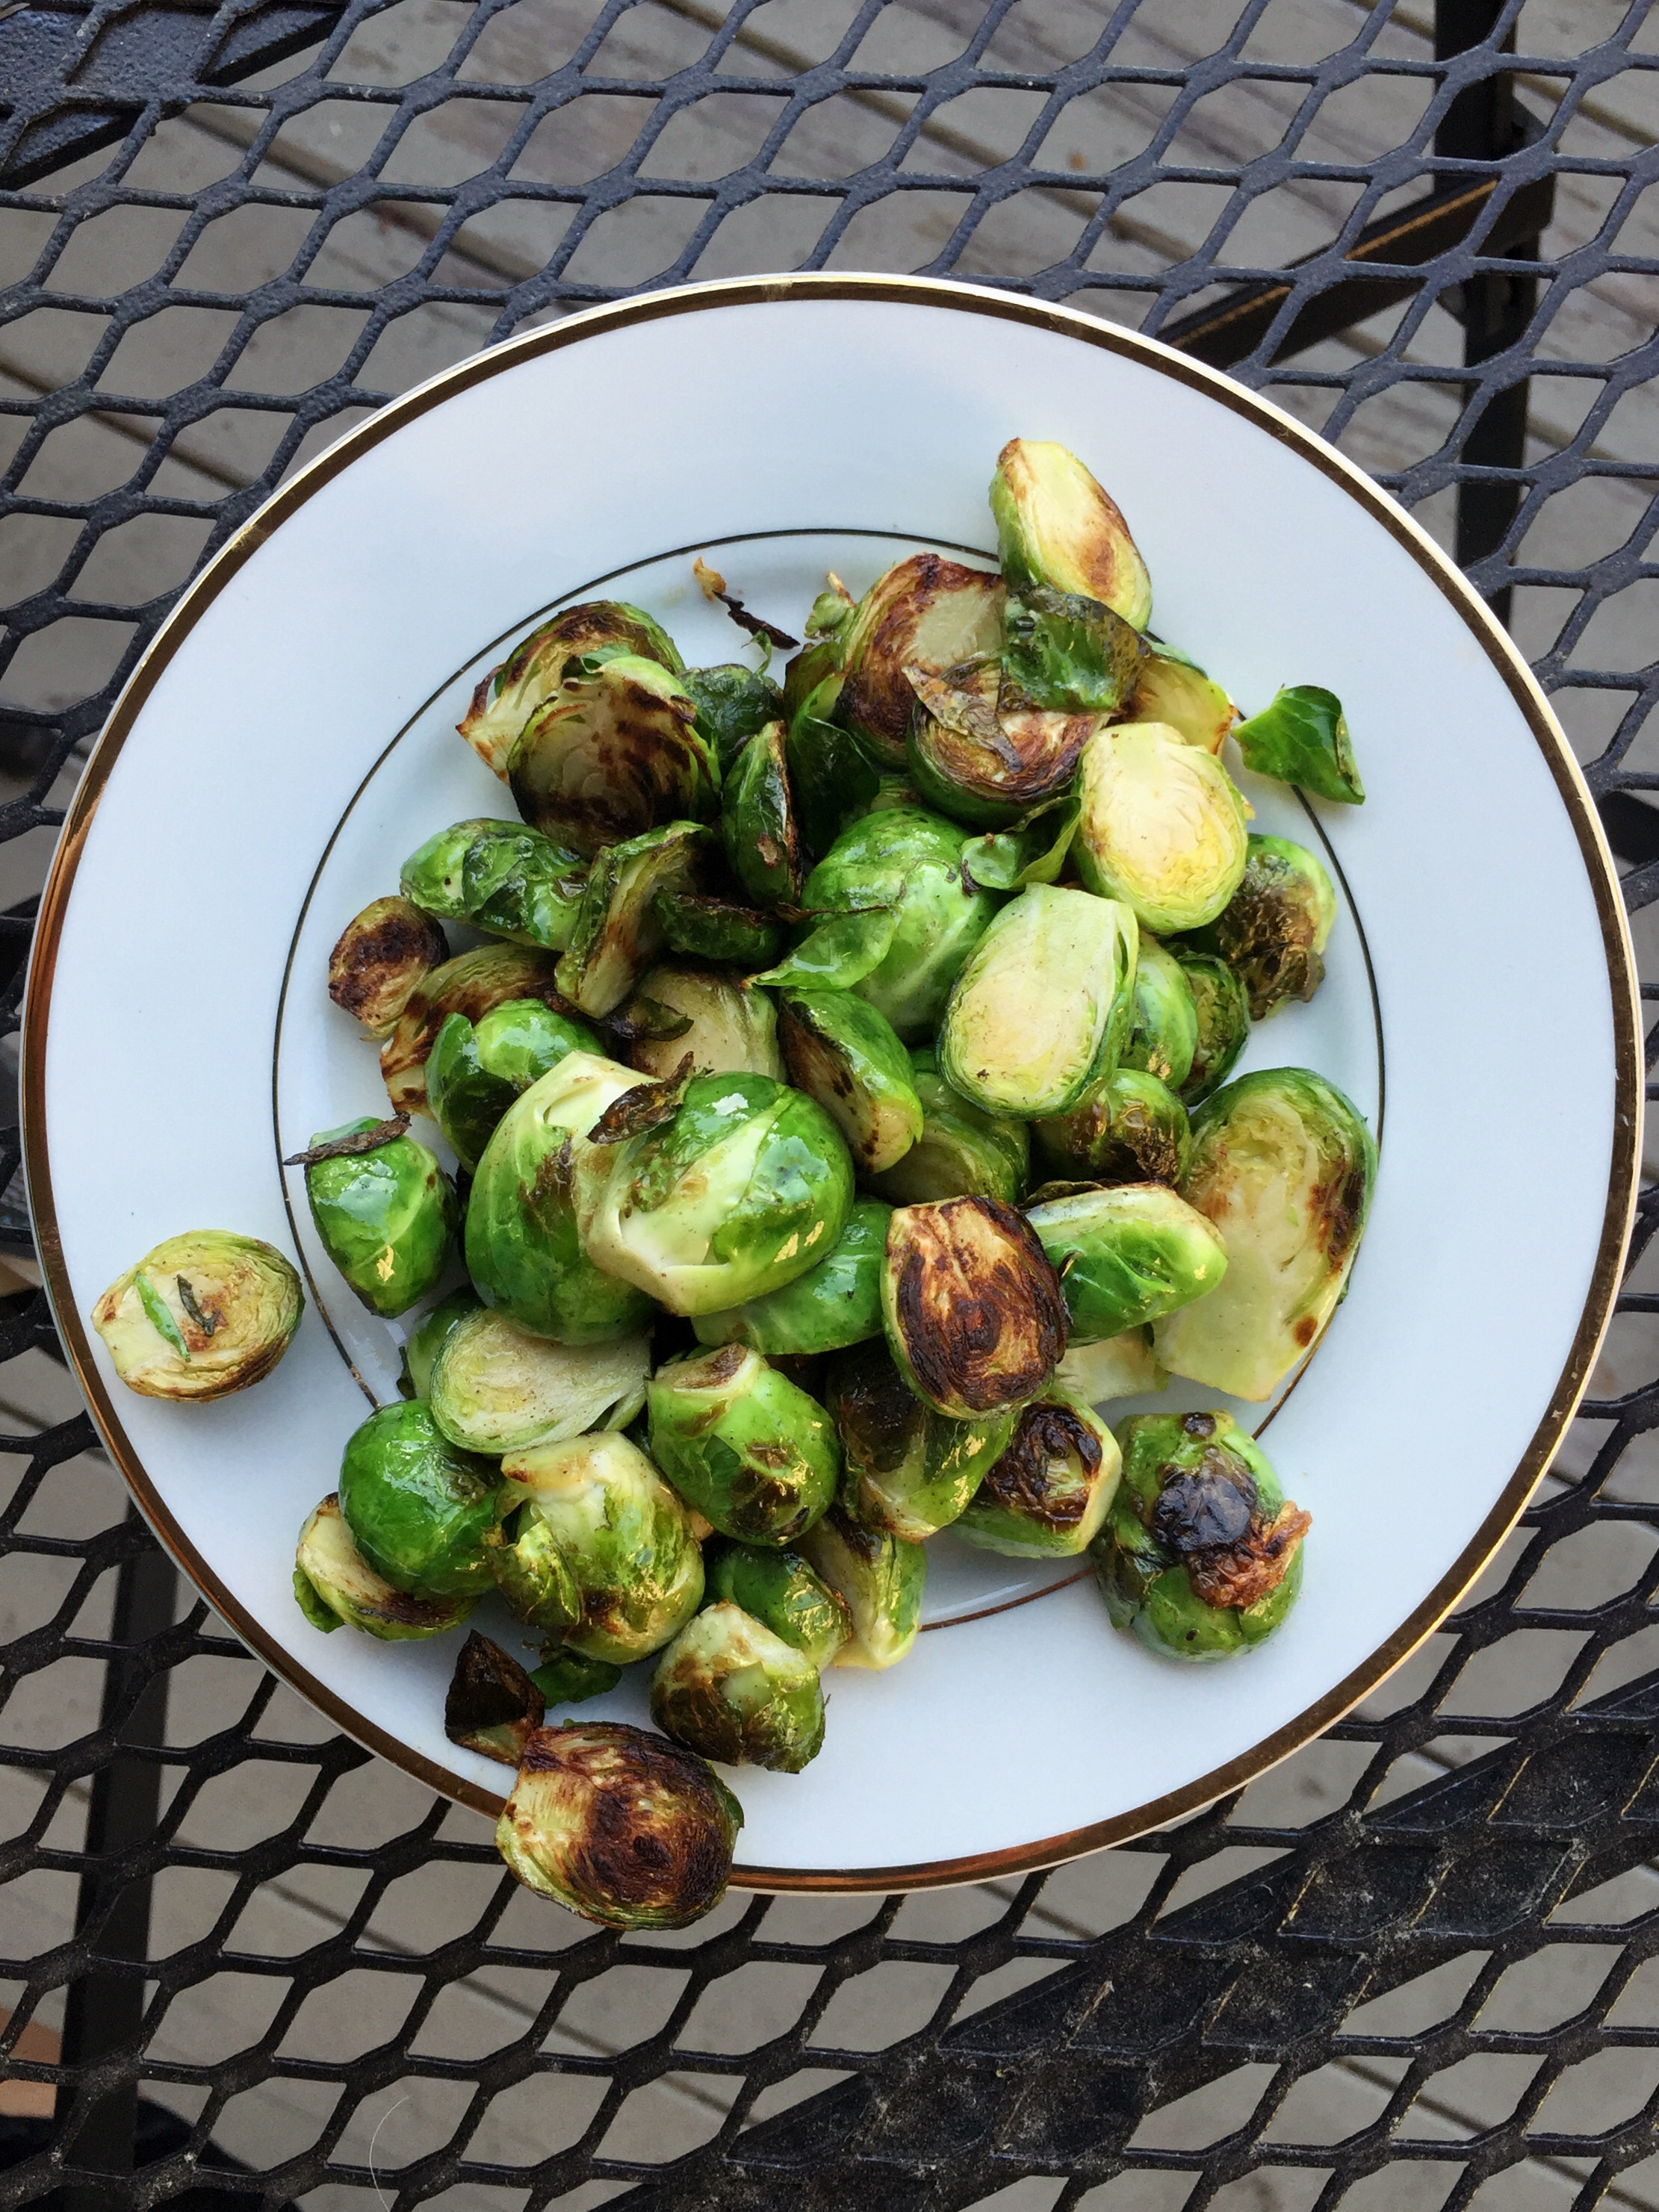 Brussel Sprouts from Sprouts